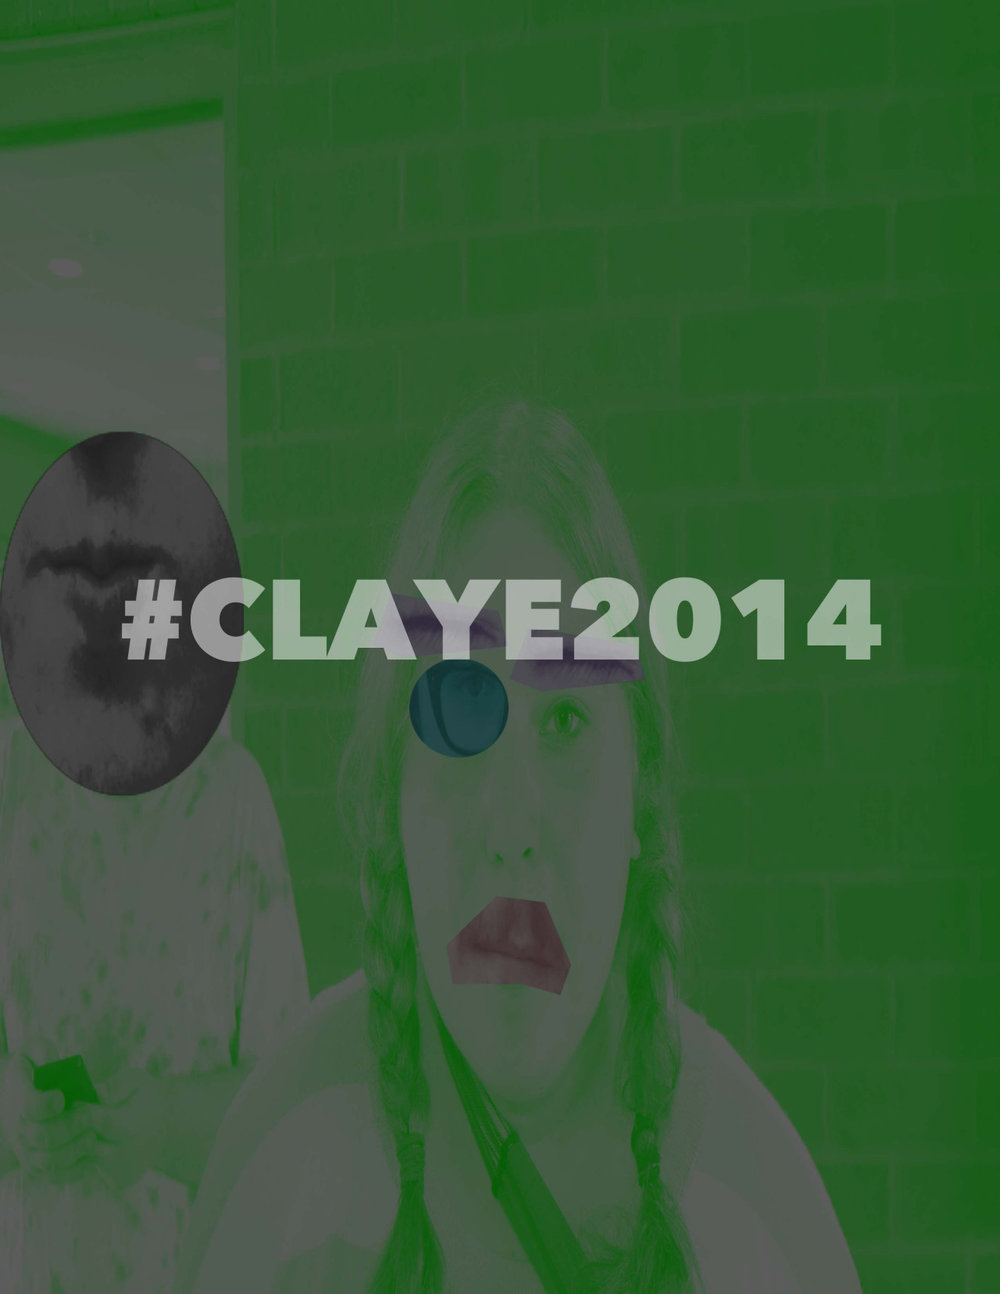 CLAYE is coming this summer. Bring your detachable body parts.